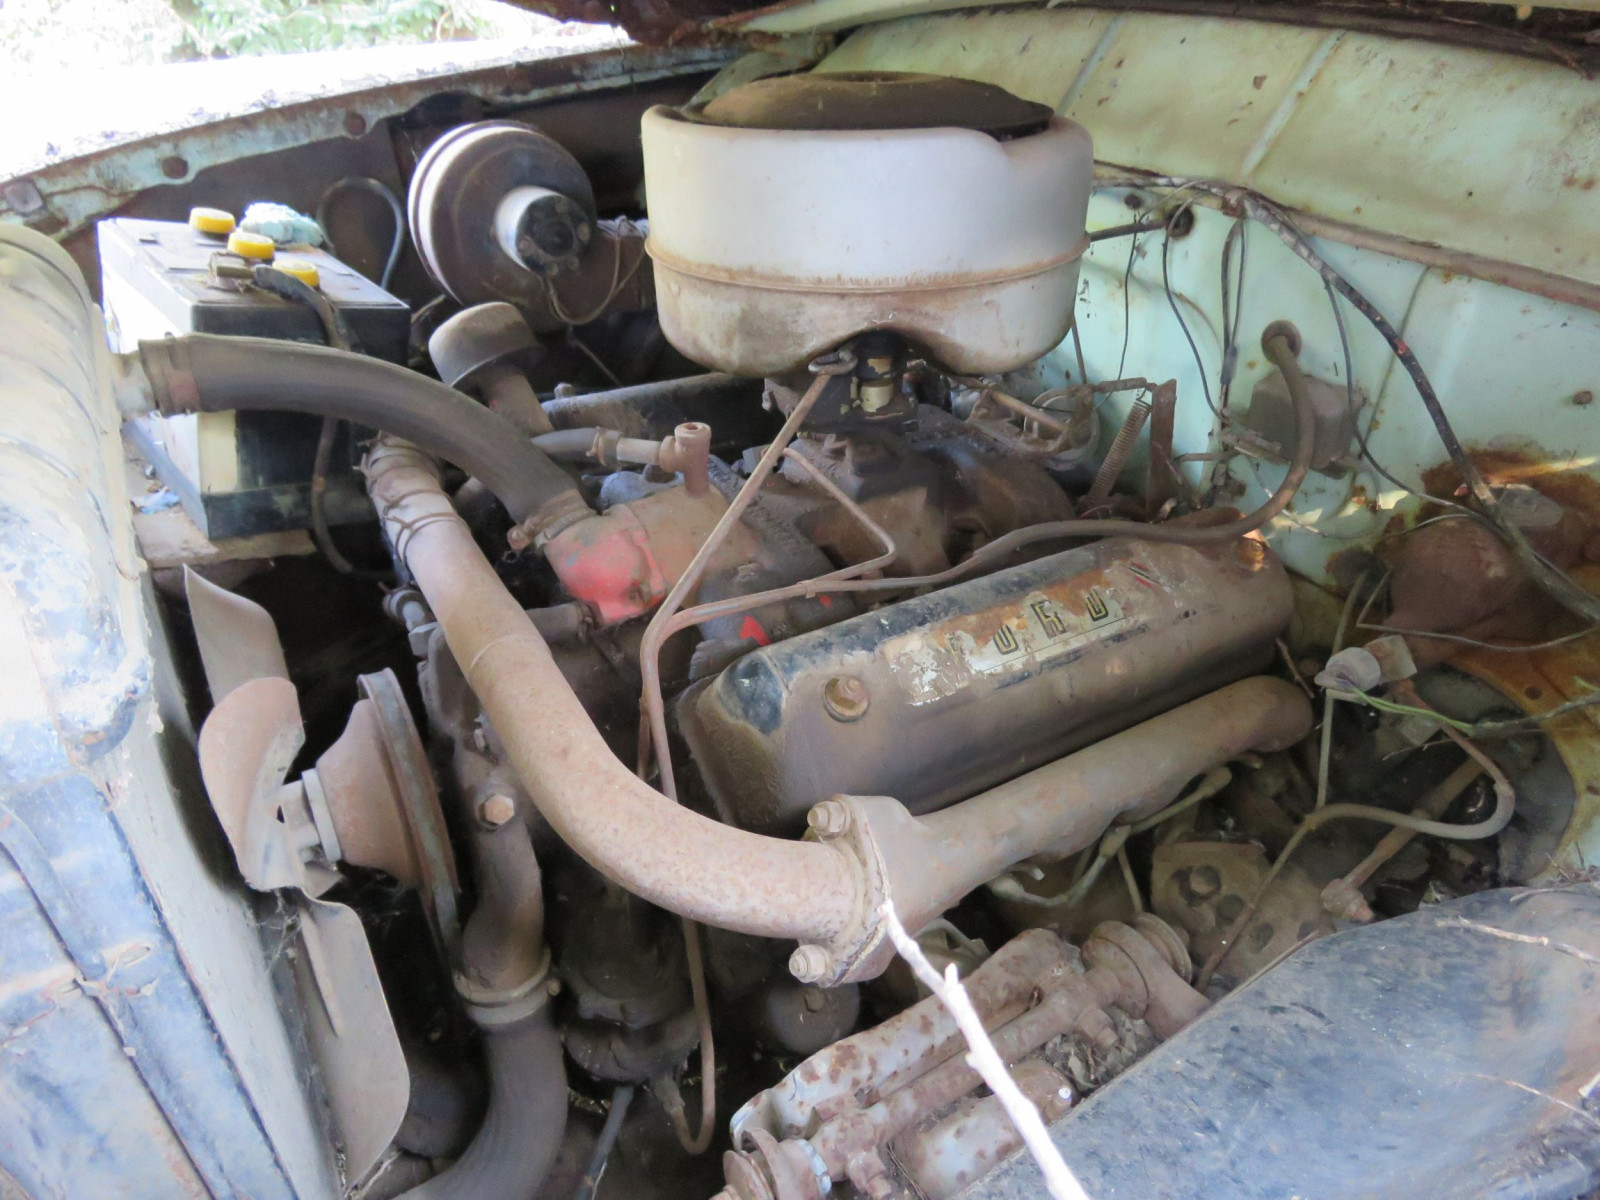 1955 Ford Customline 4dr Sedan for Project or Parts - Image 4